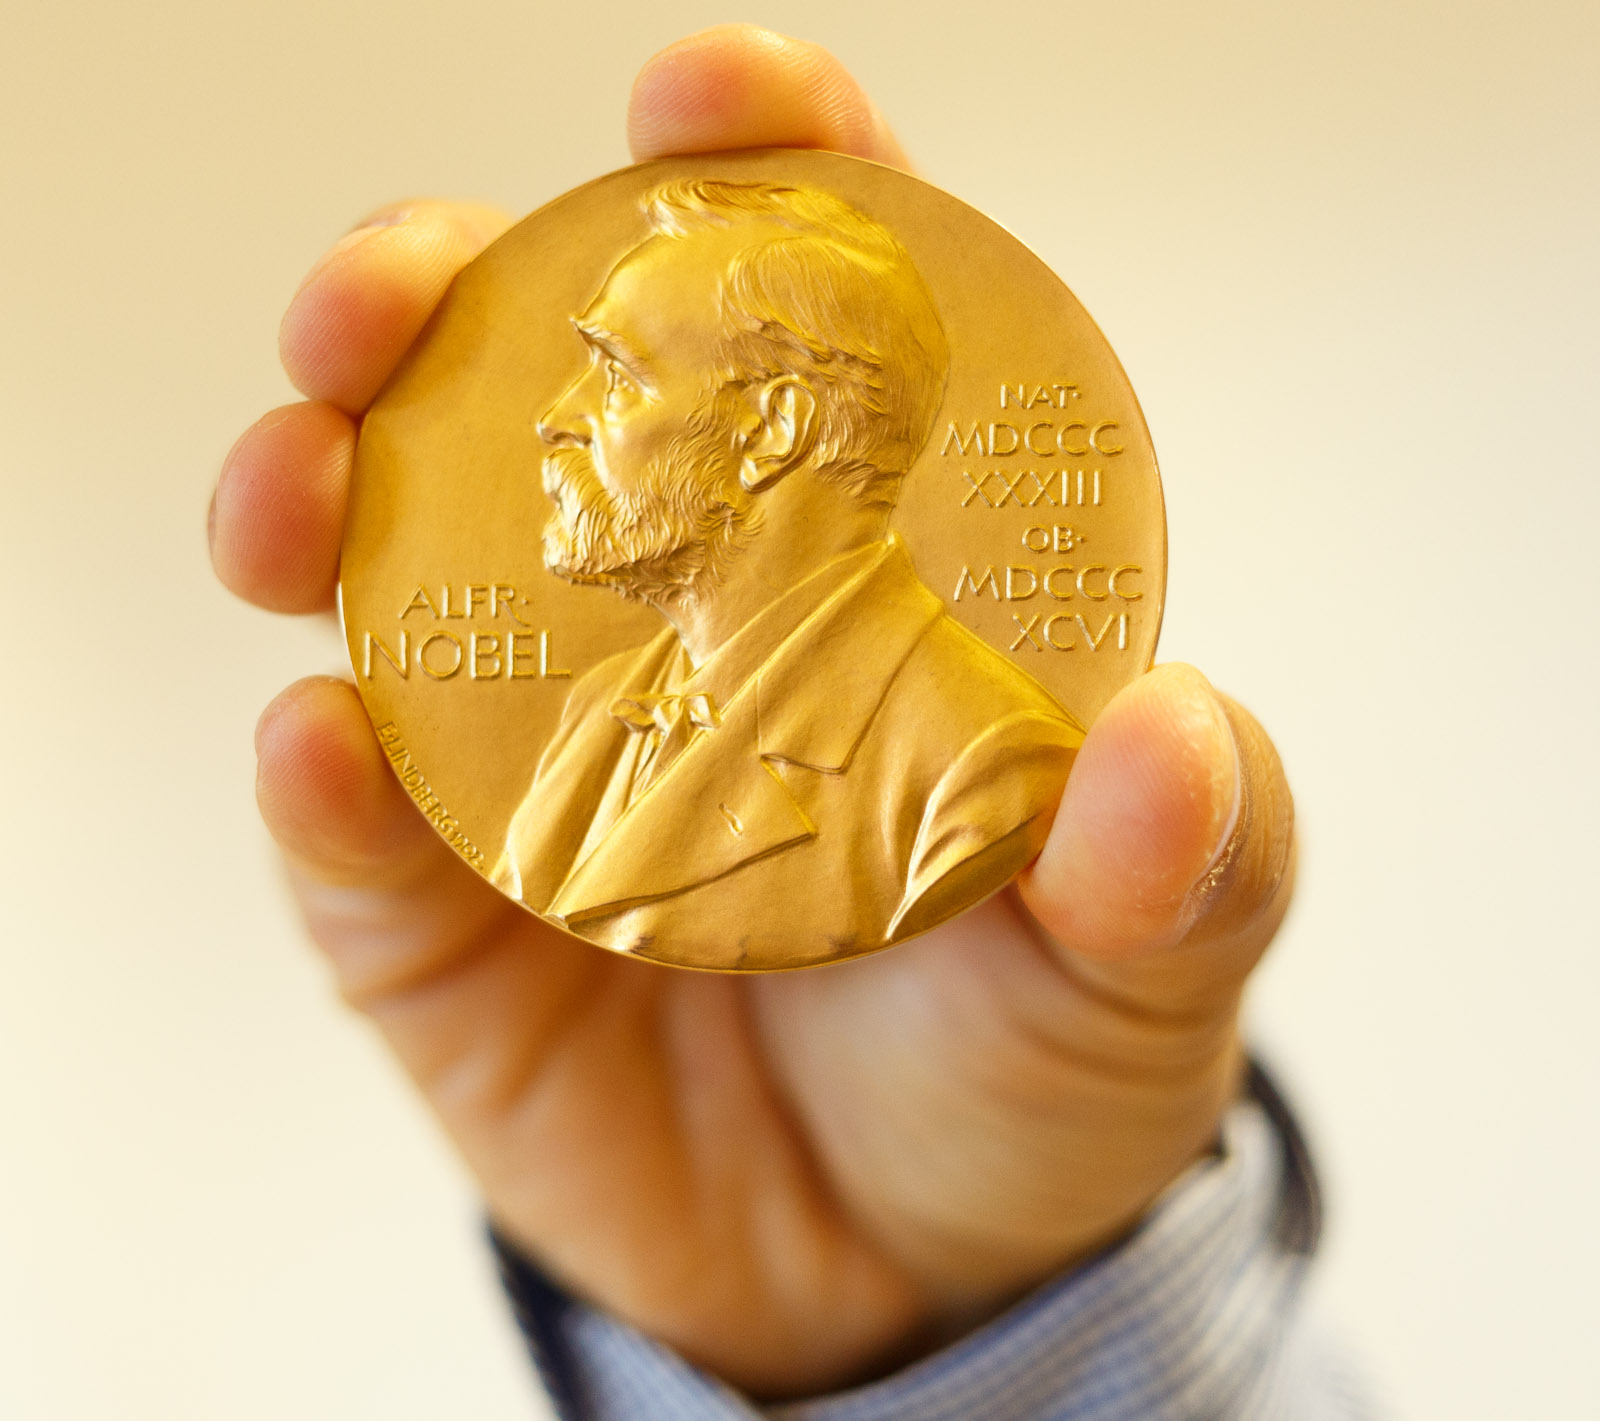 Gerd Binnig and Heinrich Rohrer, two researchers at IBM's research lab in Zurich, Switzerland, received the Nobel prize for developing the scanning tunneling microscope. That instrument is now a fixture for nanotechnology research.